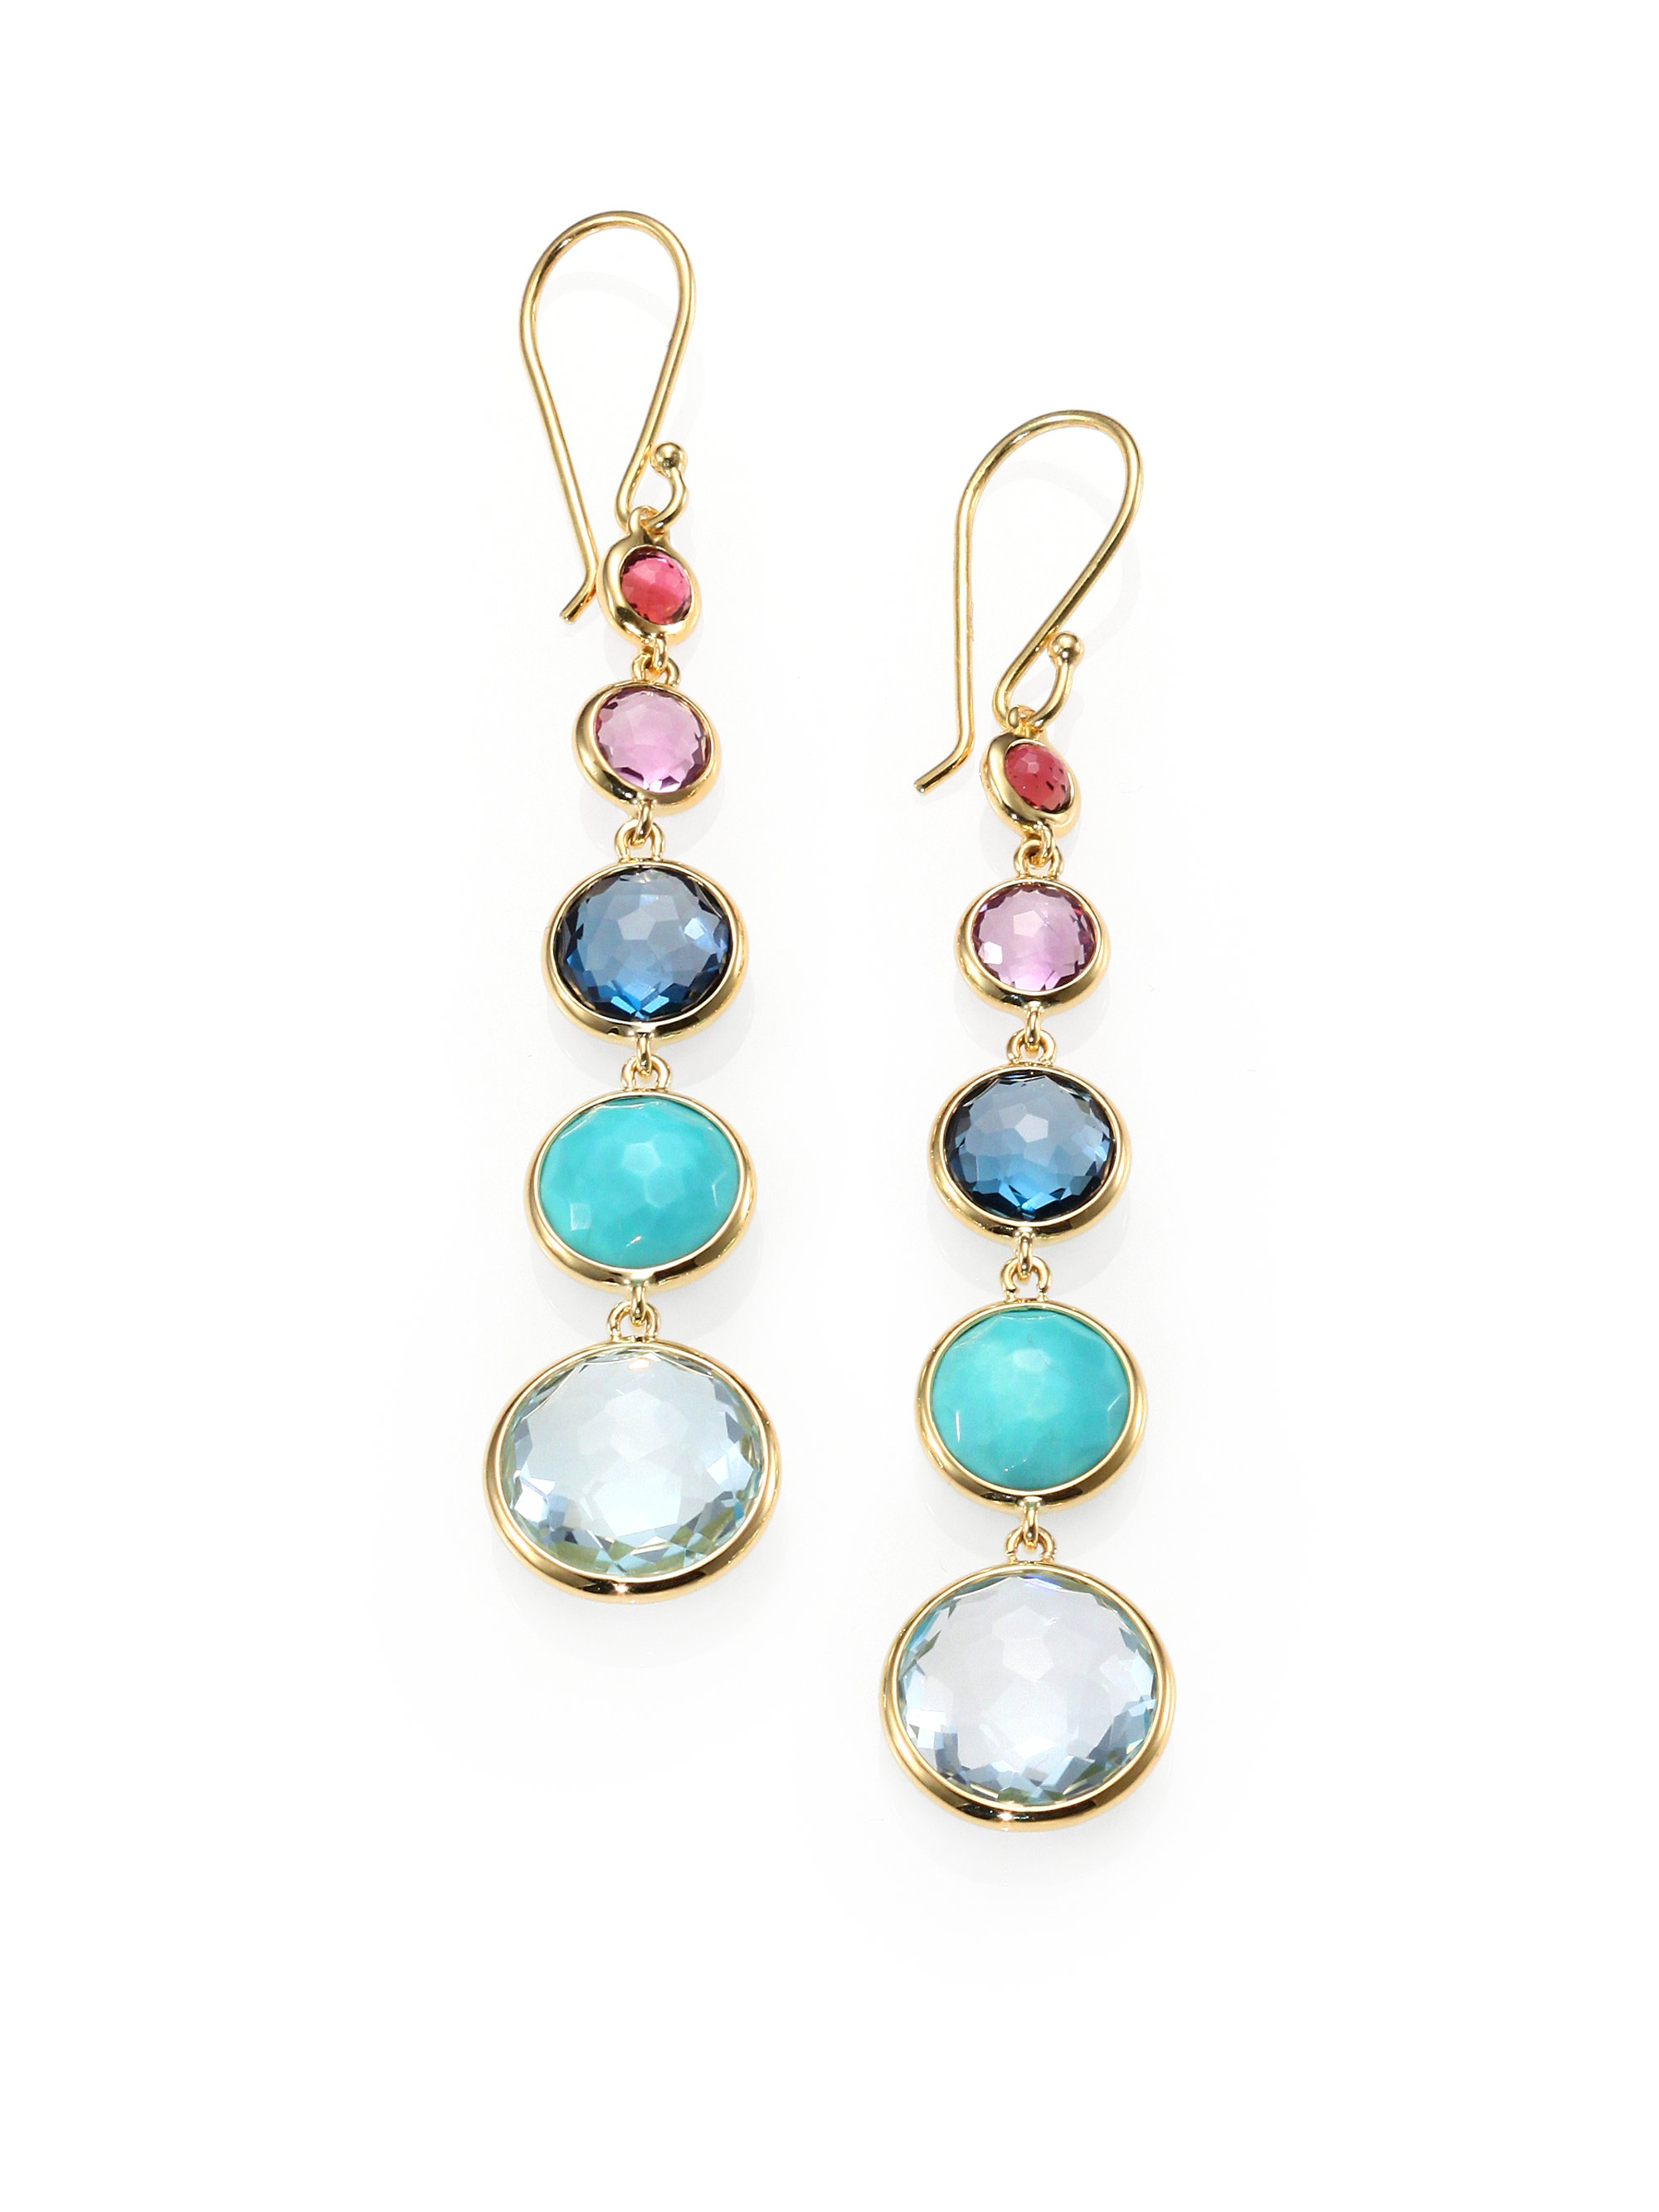 Ippolita 18k Lollipop Three-Stone Drop Earrings in Pacific htsFZ5jJ